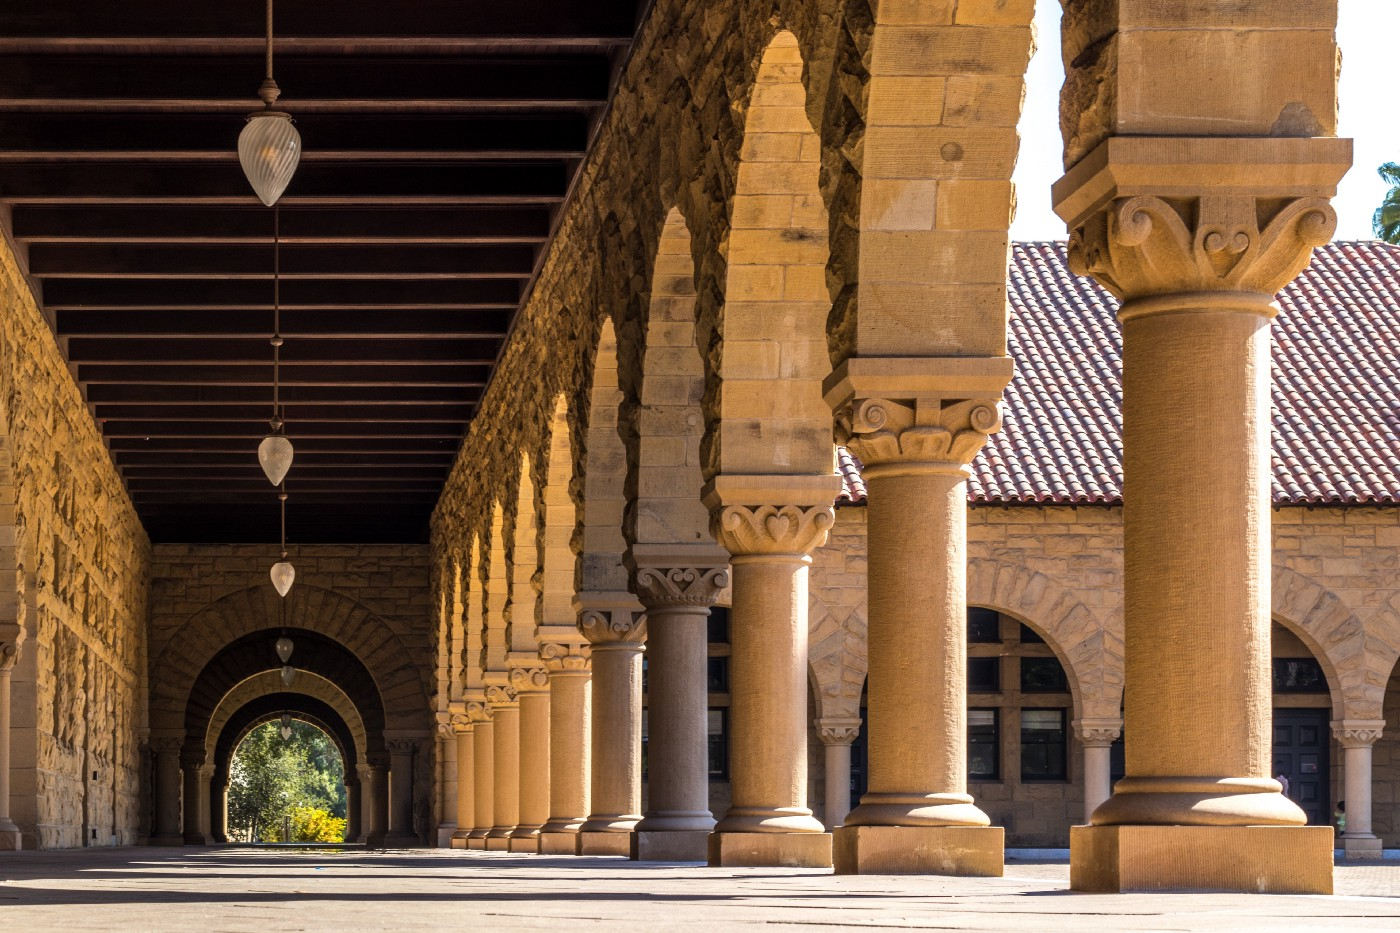 Photo of hallway and columns at Stanford University